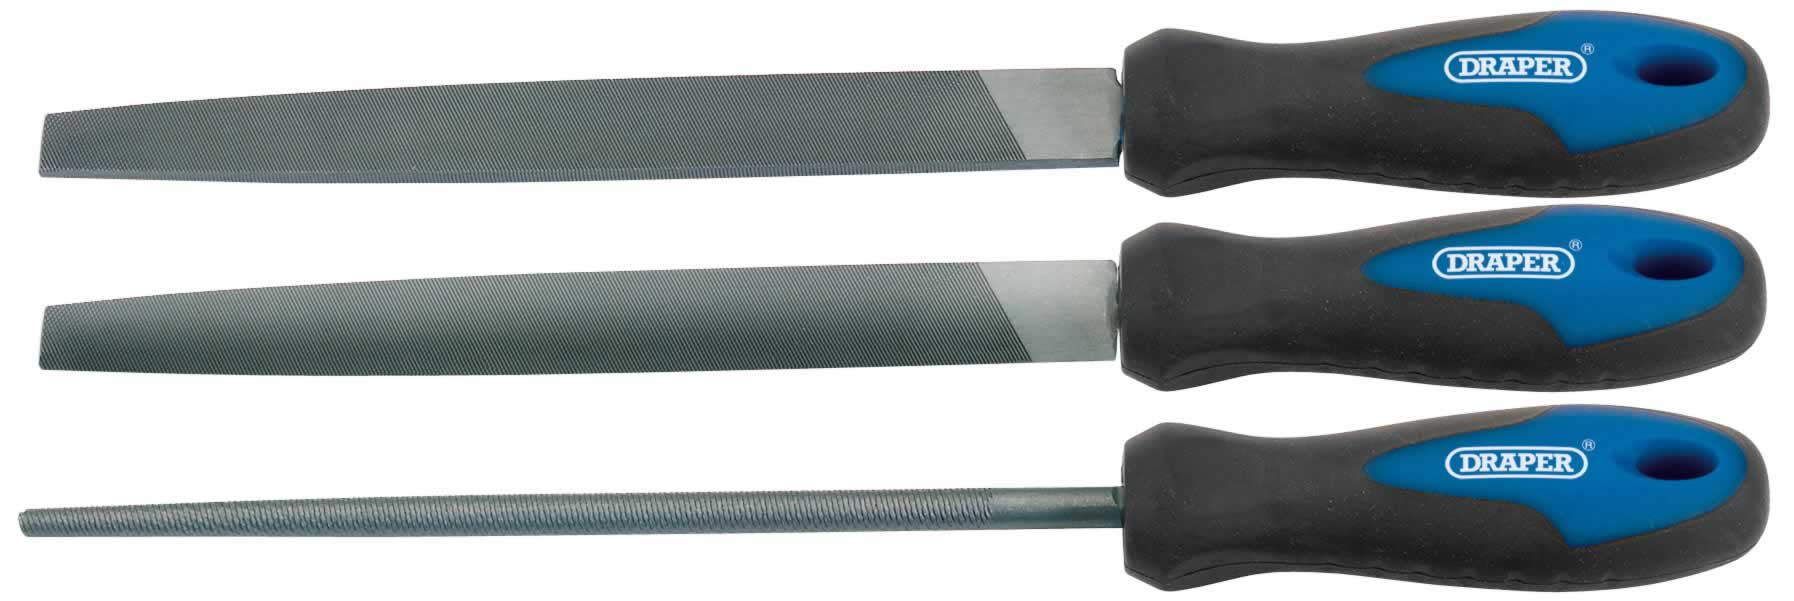 3 PIECE 200mm SOFT GRIP ENGINEERS FILE SET